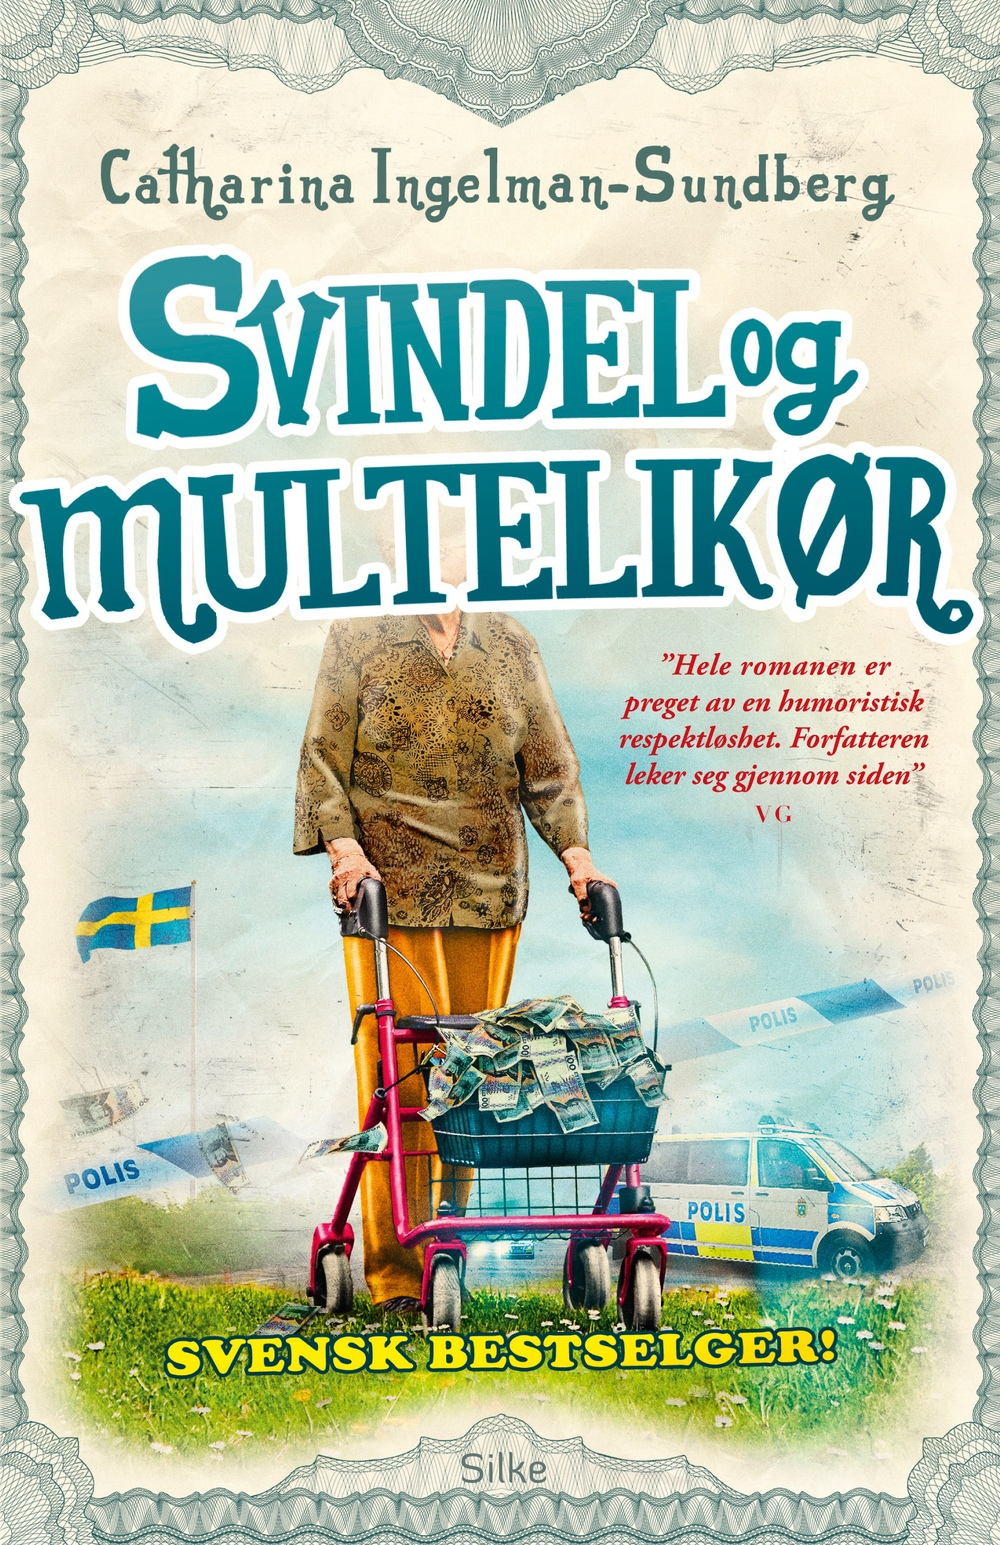 catharina ingelman sundberg coffee and robbery swedish.jpg